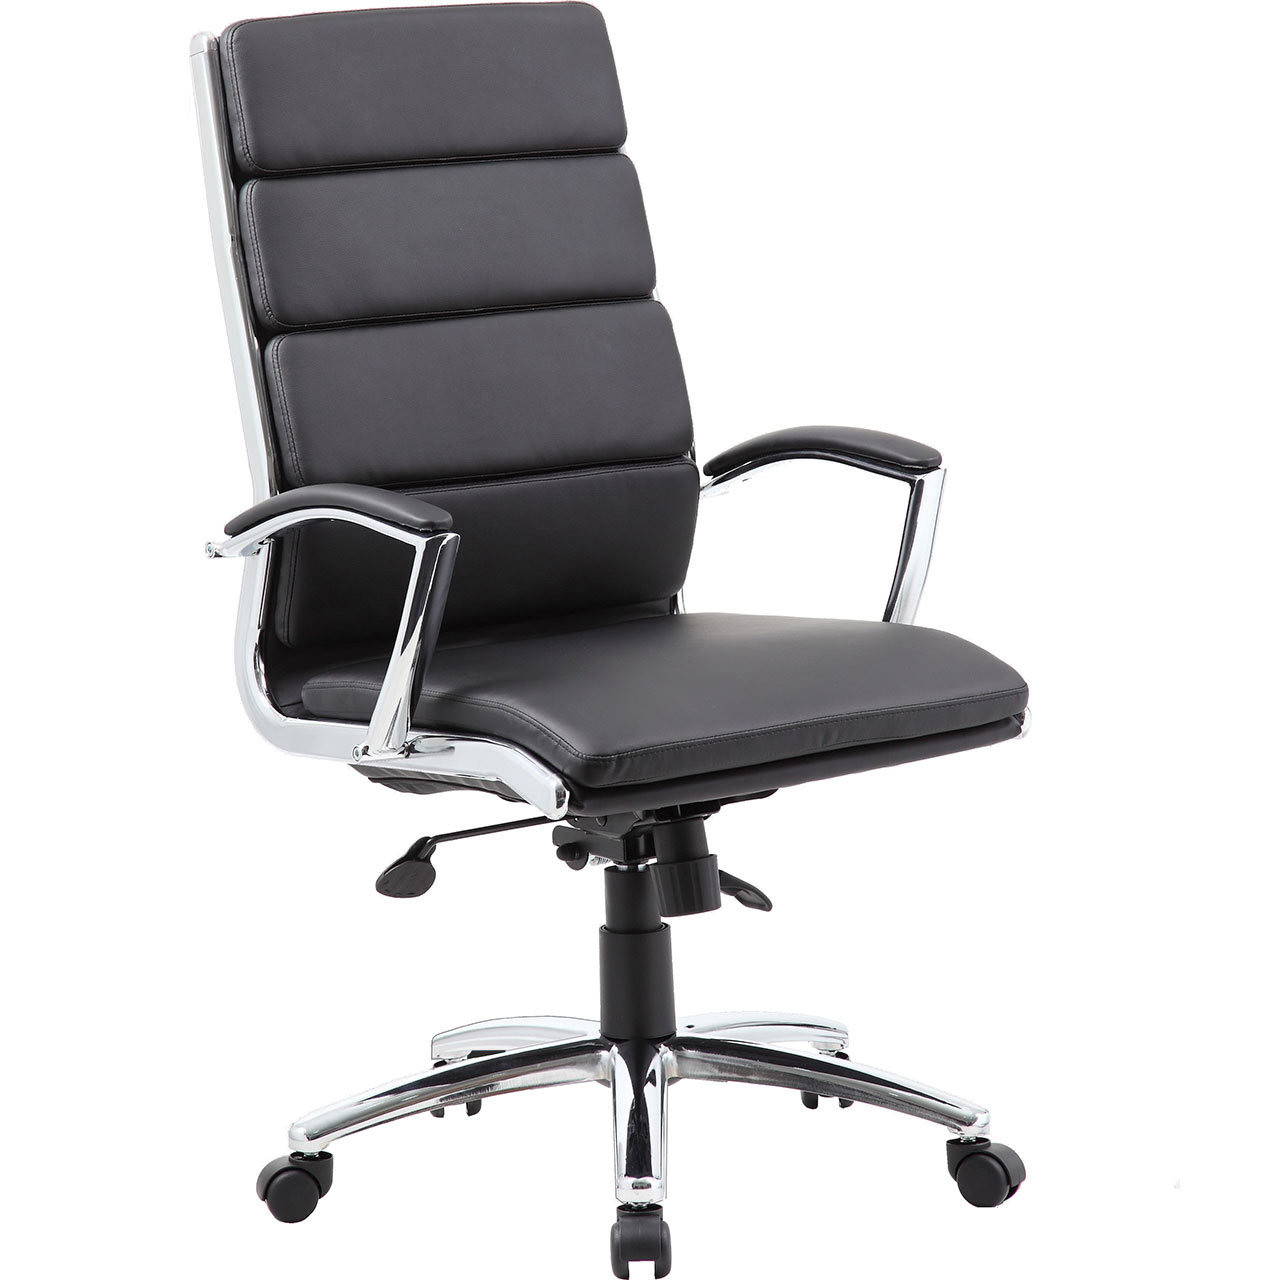 Picture of: Black Vinyl Segmented Executive Office Chair Dealscoop Great Prices On Refurbished Electronics And Office Furniture